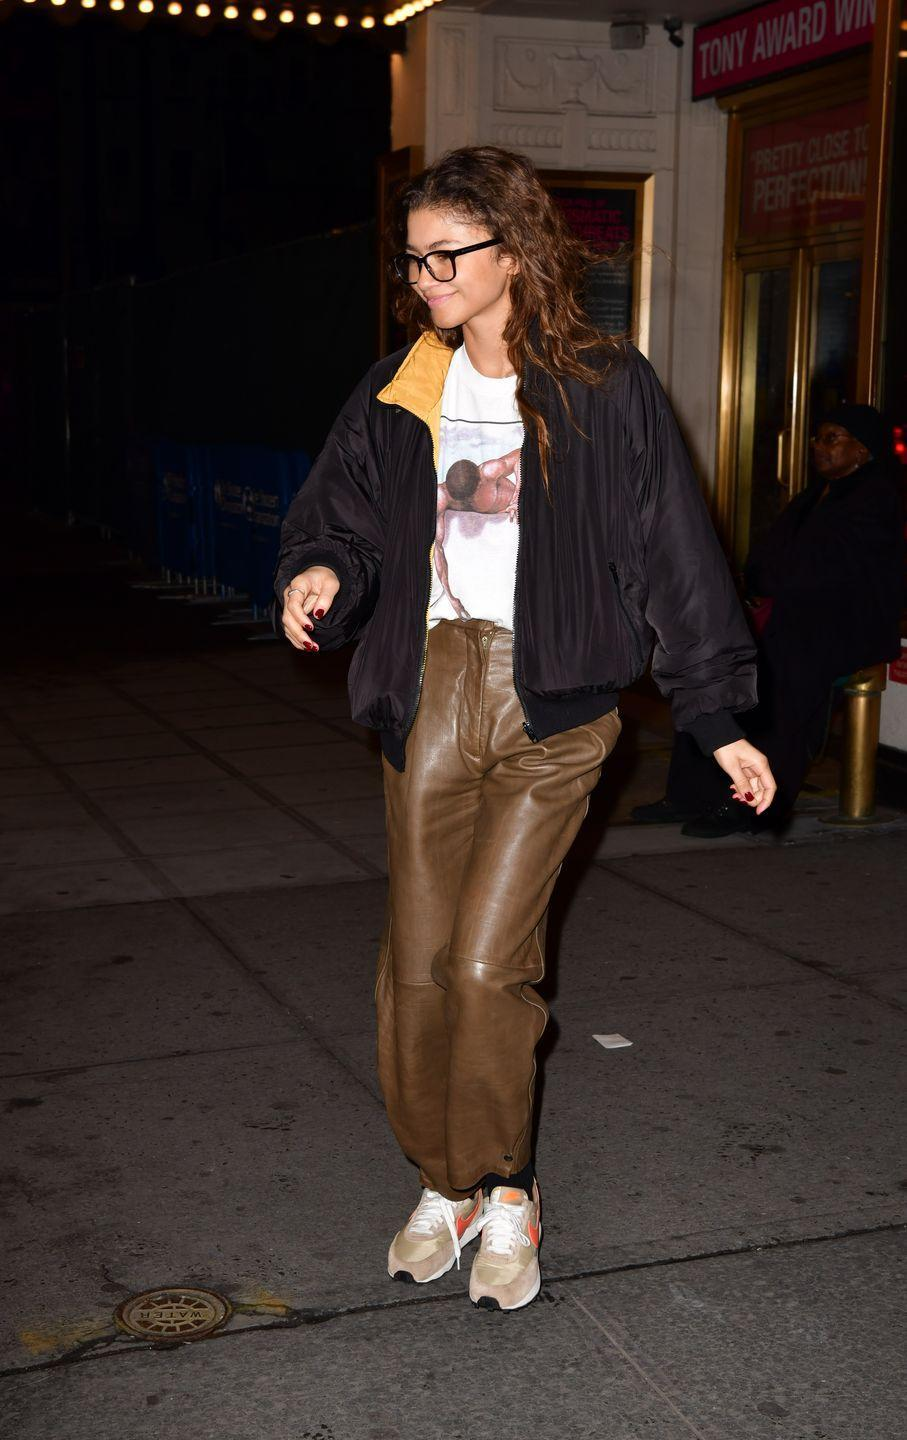 <p>Behold: the ultimate winter outfit hack for people who HATE being cold. The secret's all in the pants – go for a faux leather trouser over jeans. The thick fabric will keep away the wind chill and, let's face it, it looks crazy chic. <br></p>